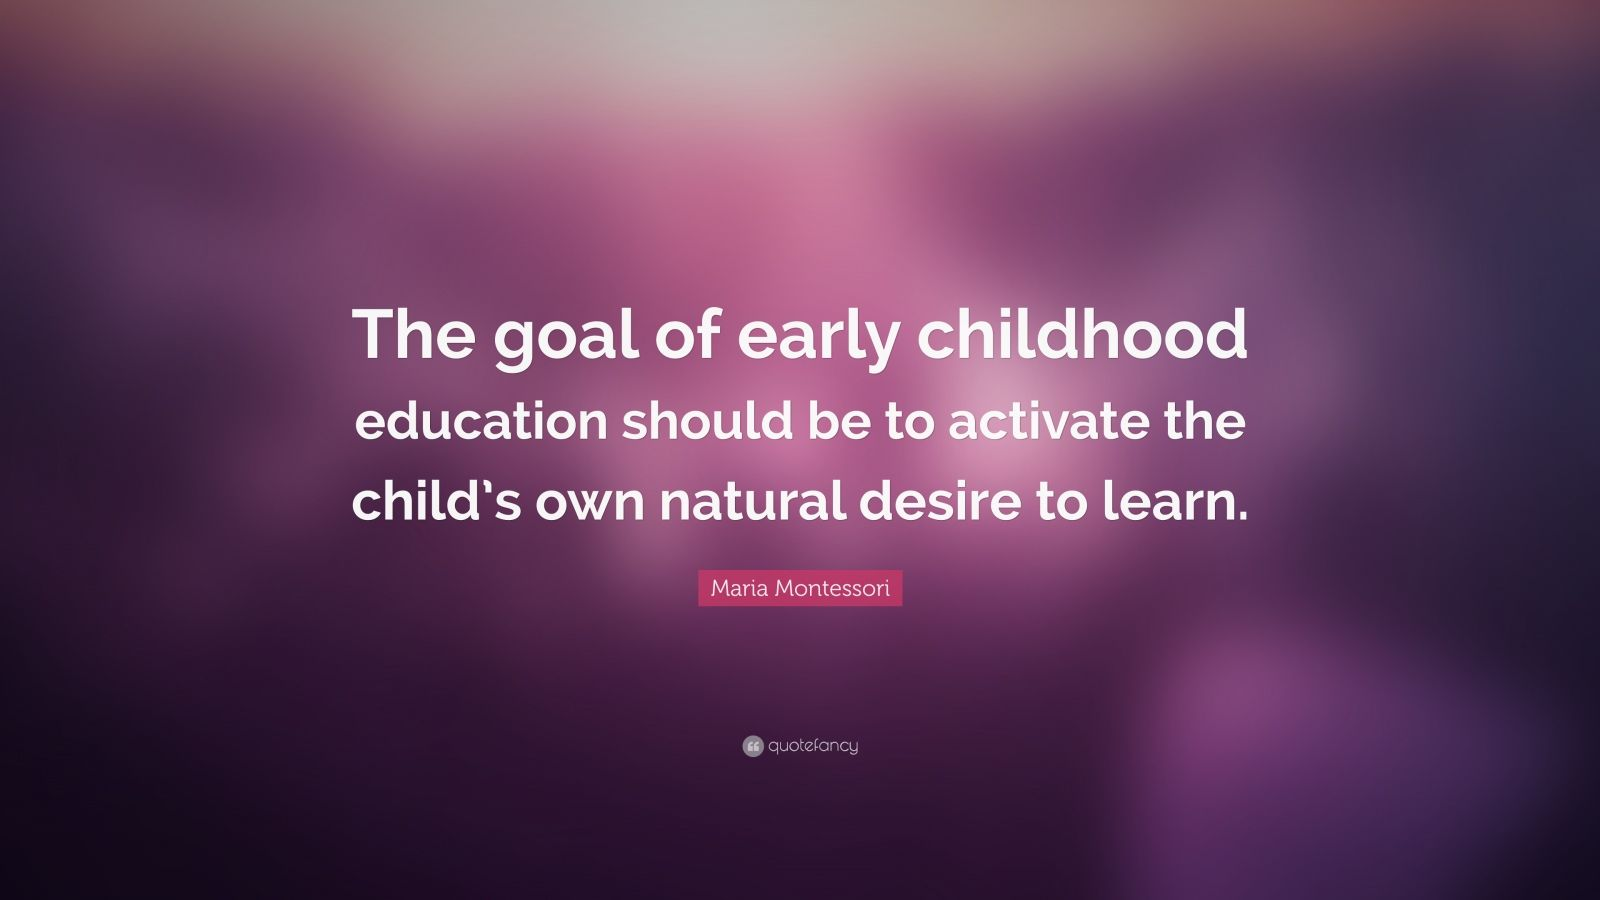 """Quotes About Childhood: """"The goal of early childhood education should be to activate the child's own natural desire to learn."""" — Maria Montessori"""